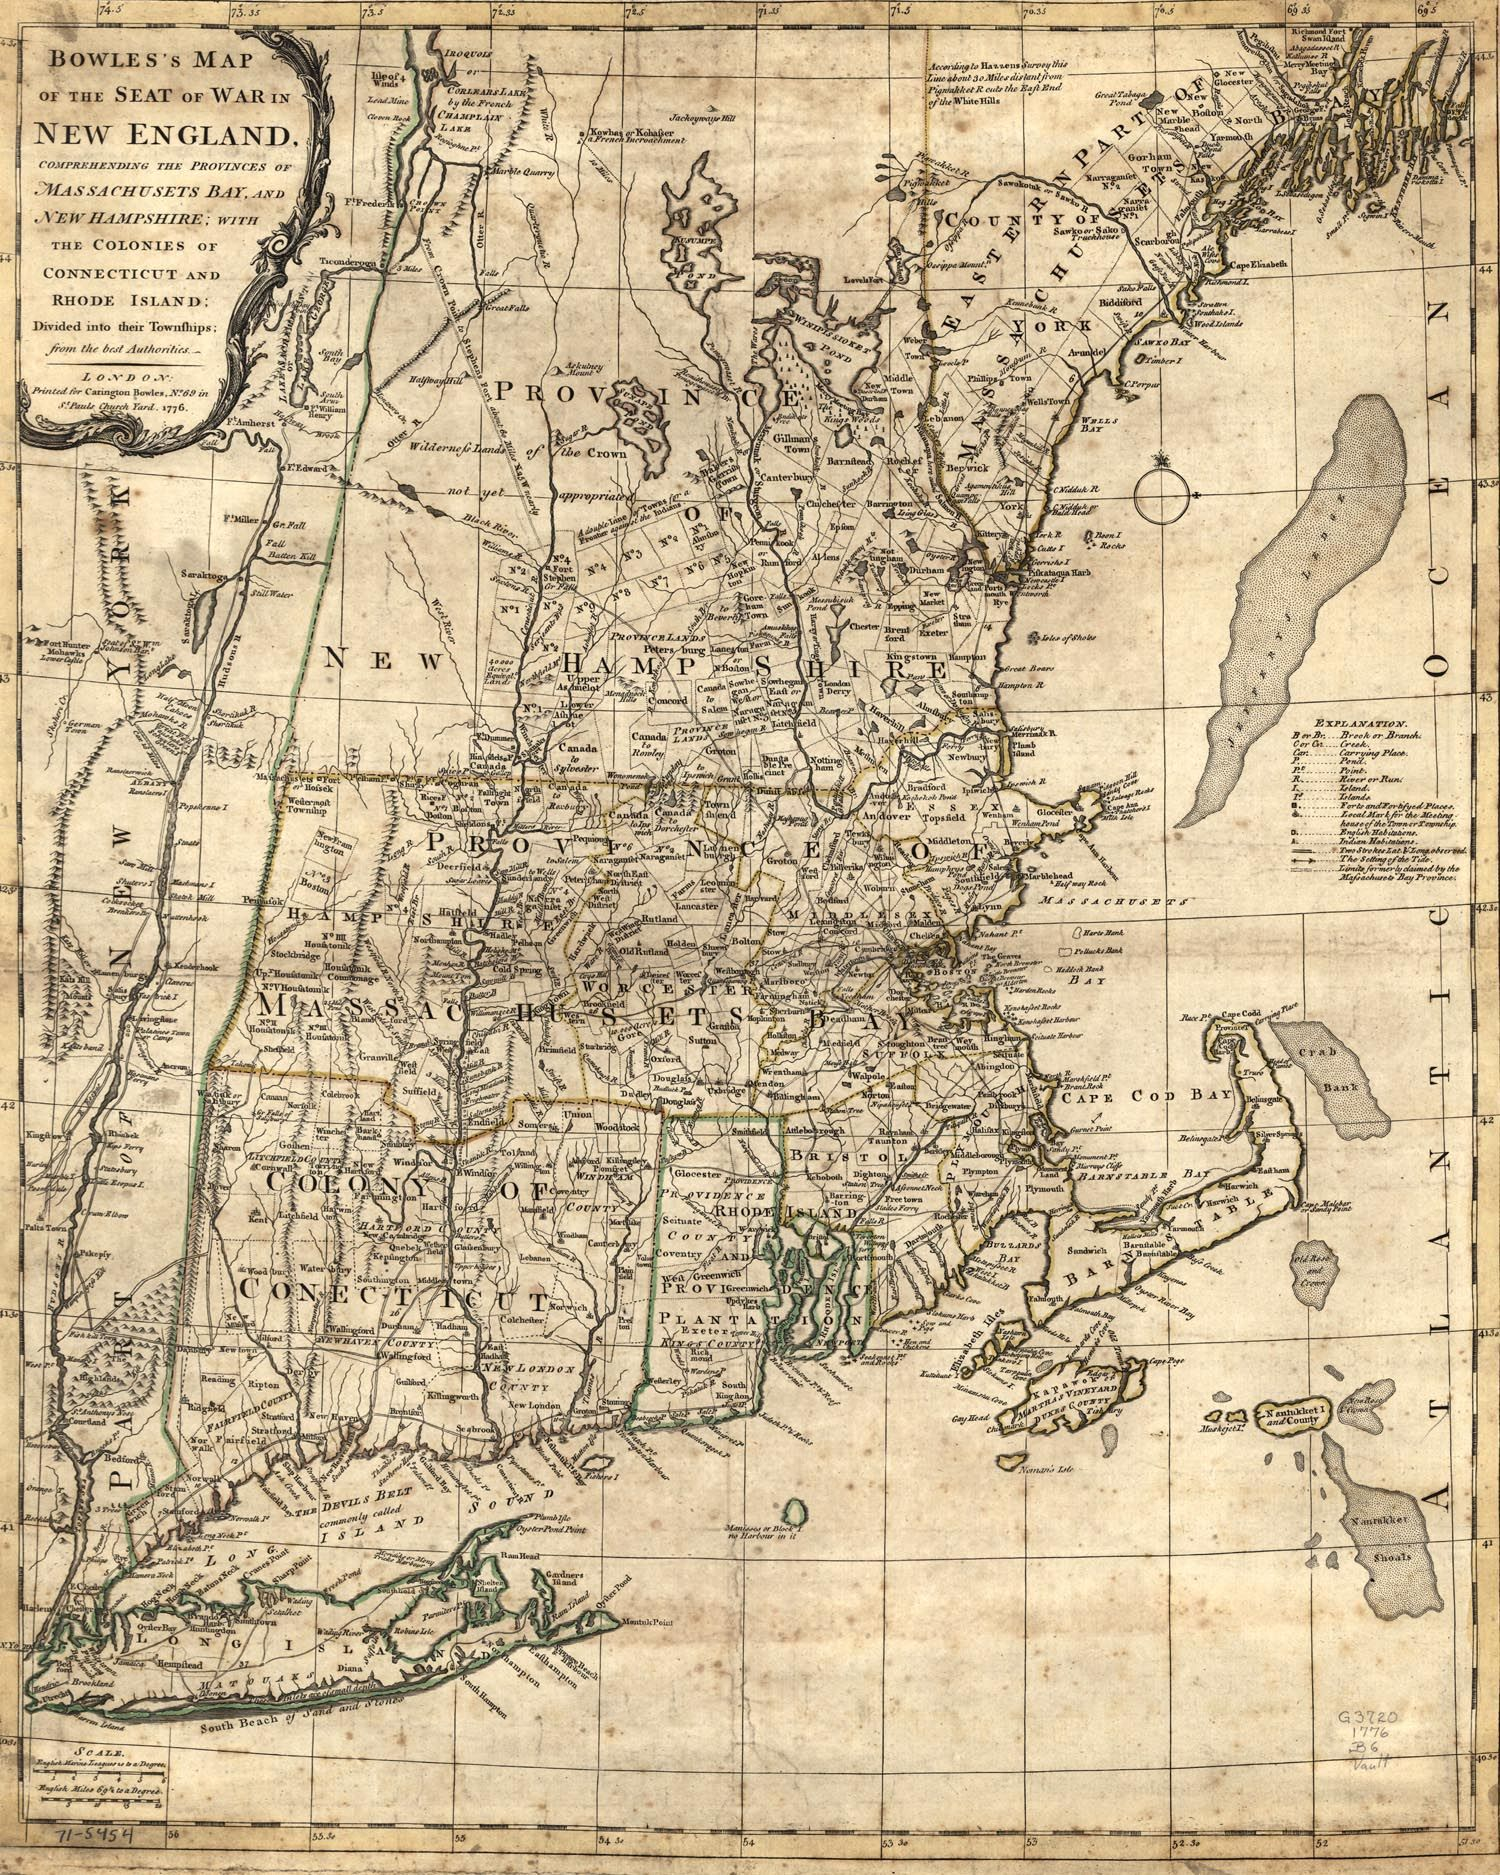 Colonial New England Map Of Colonial New England Via Trish - Map of us colonialism